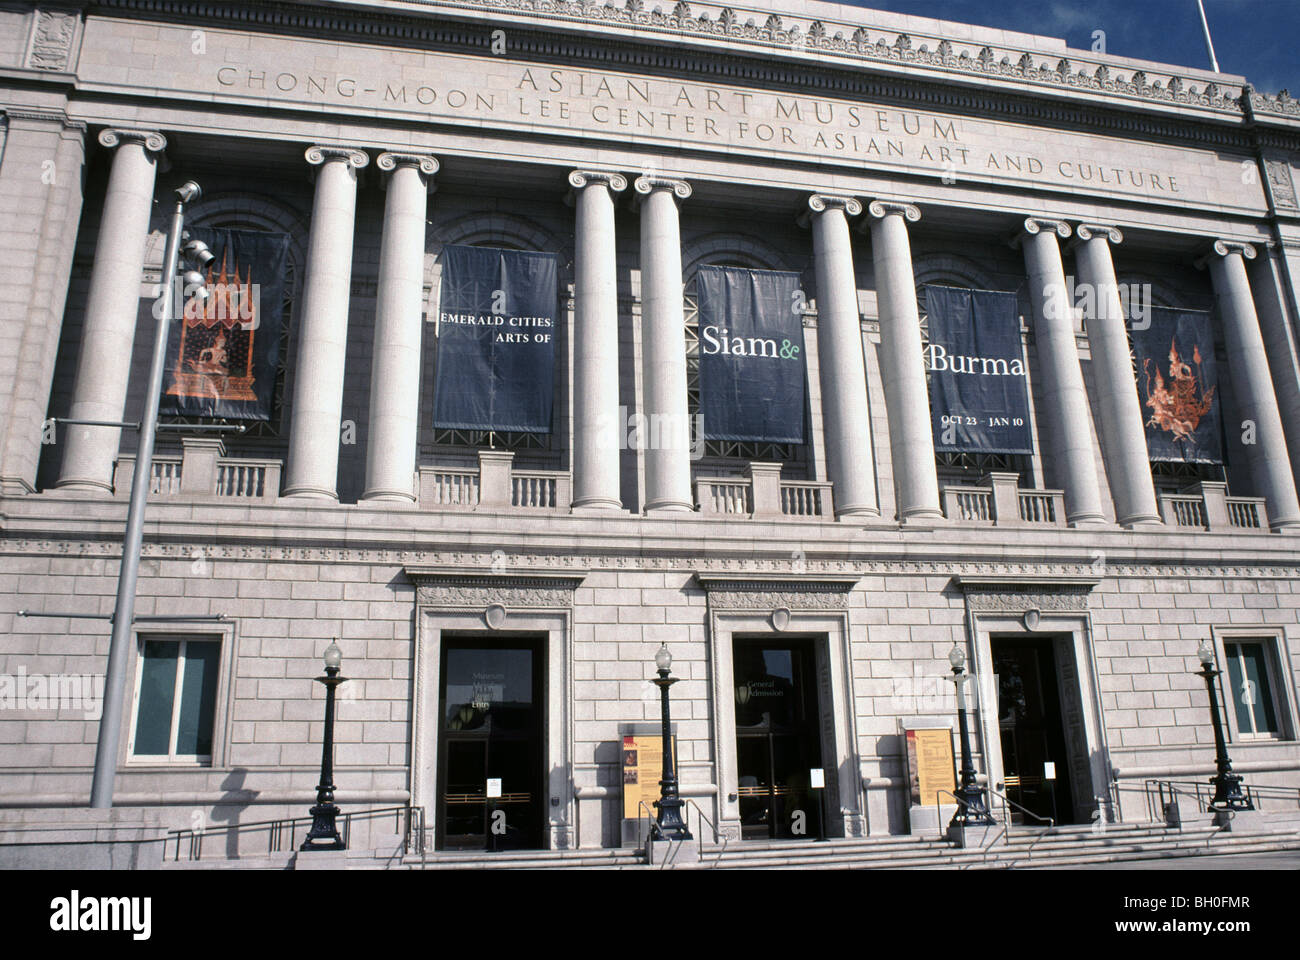 Asian Art Museum, Chong-Moon Lee center for Asian Art and Culture, San Francisco, California, USA Stock Photo